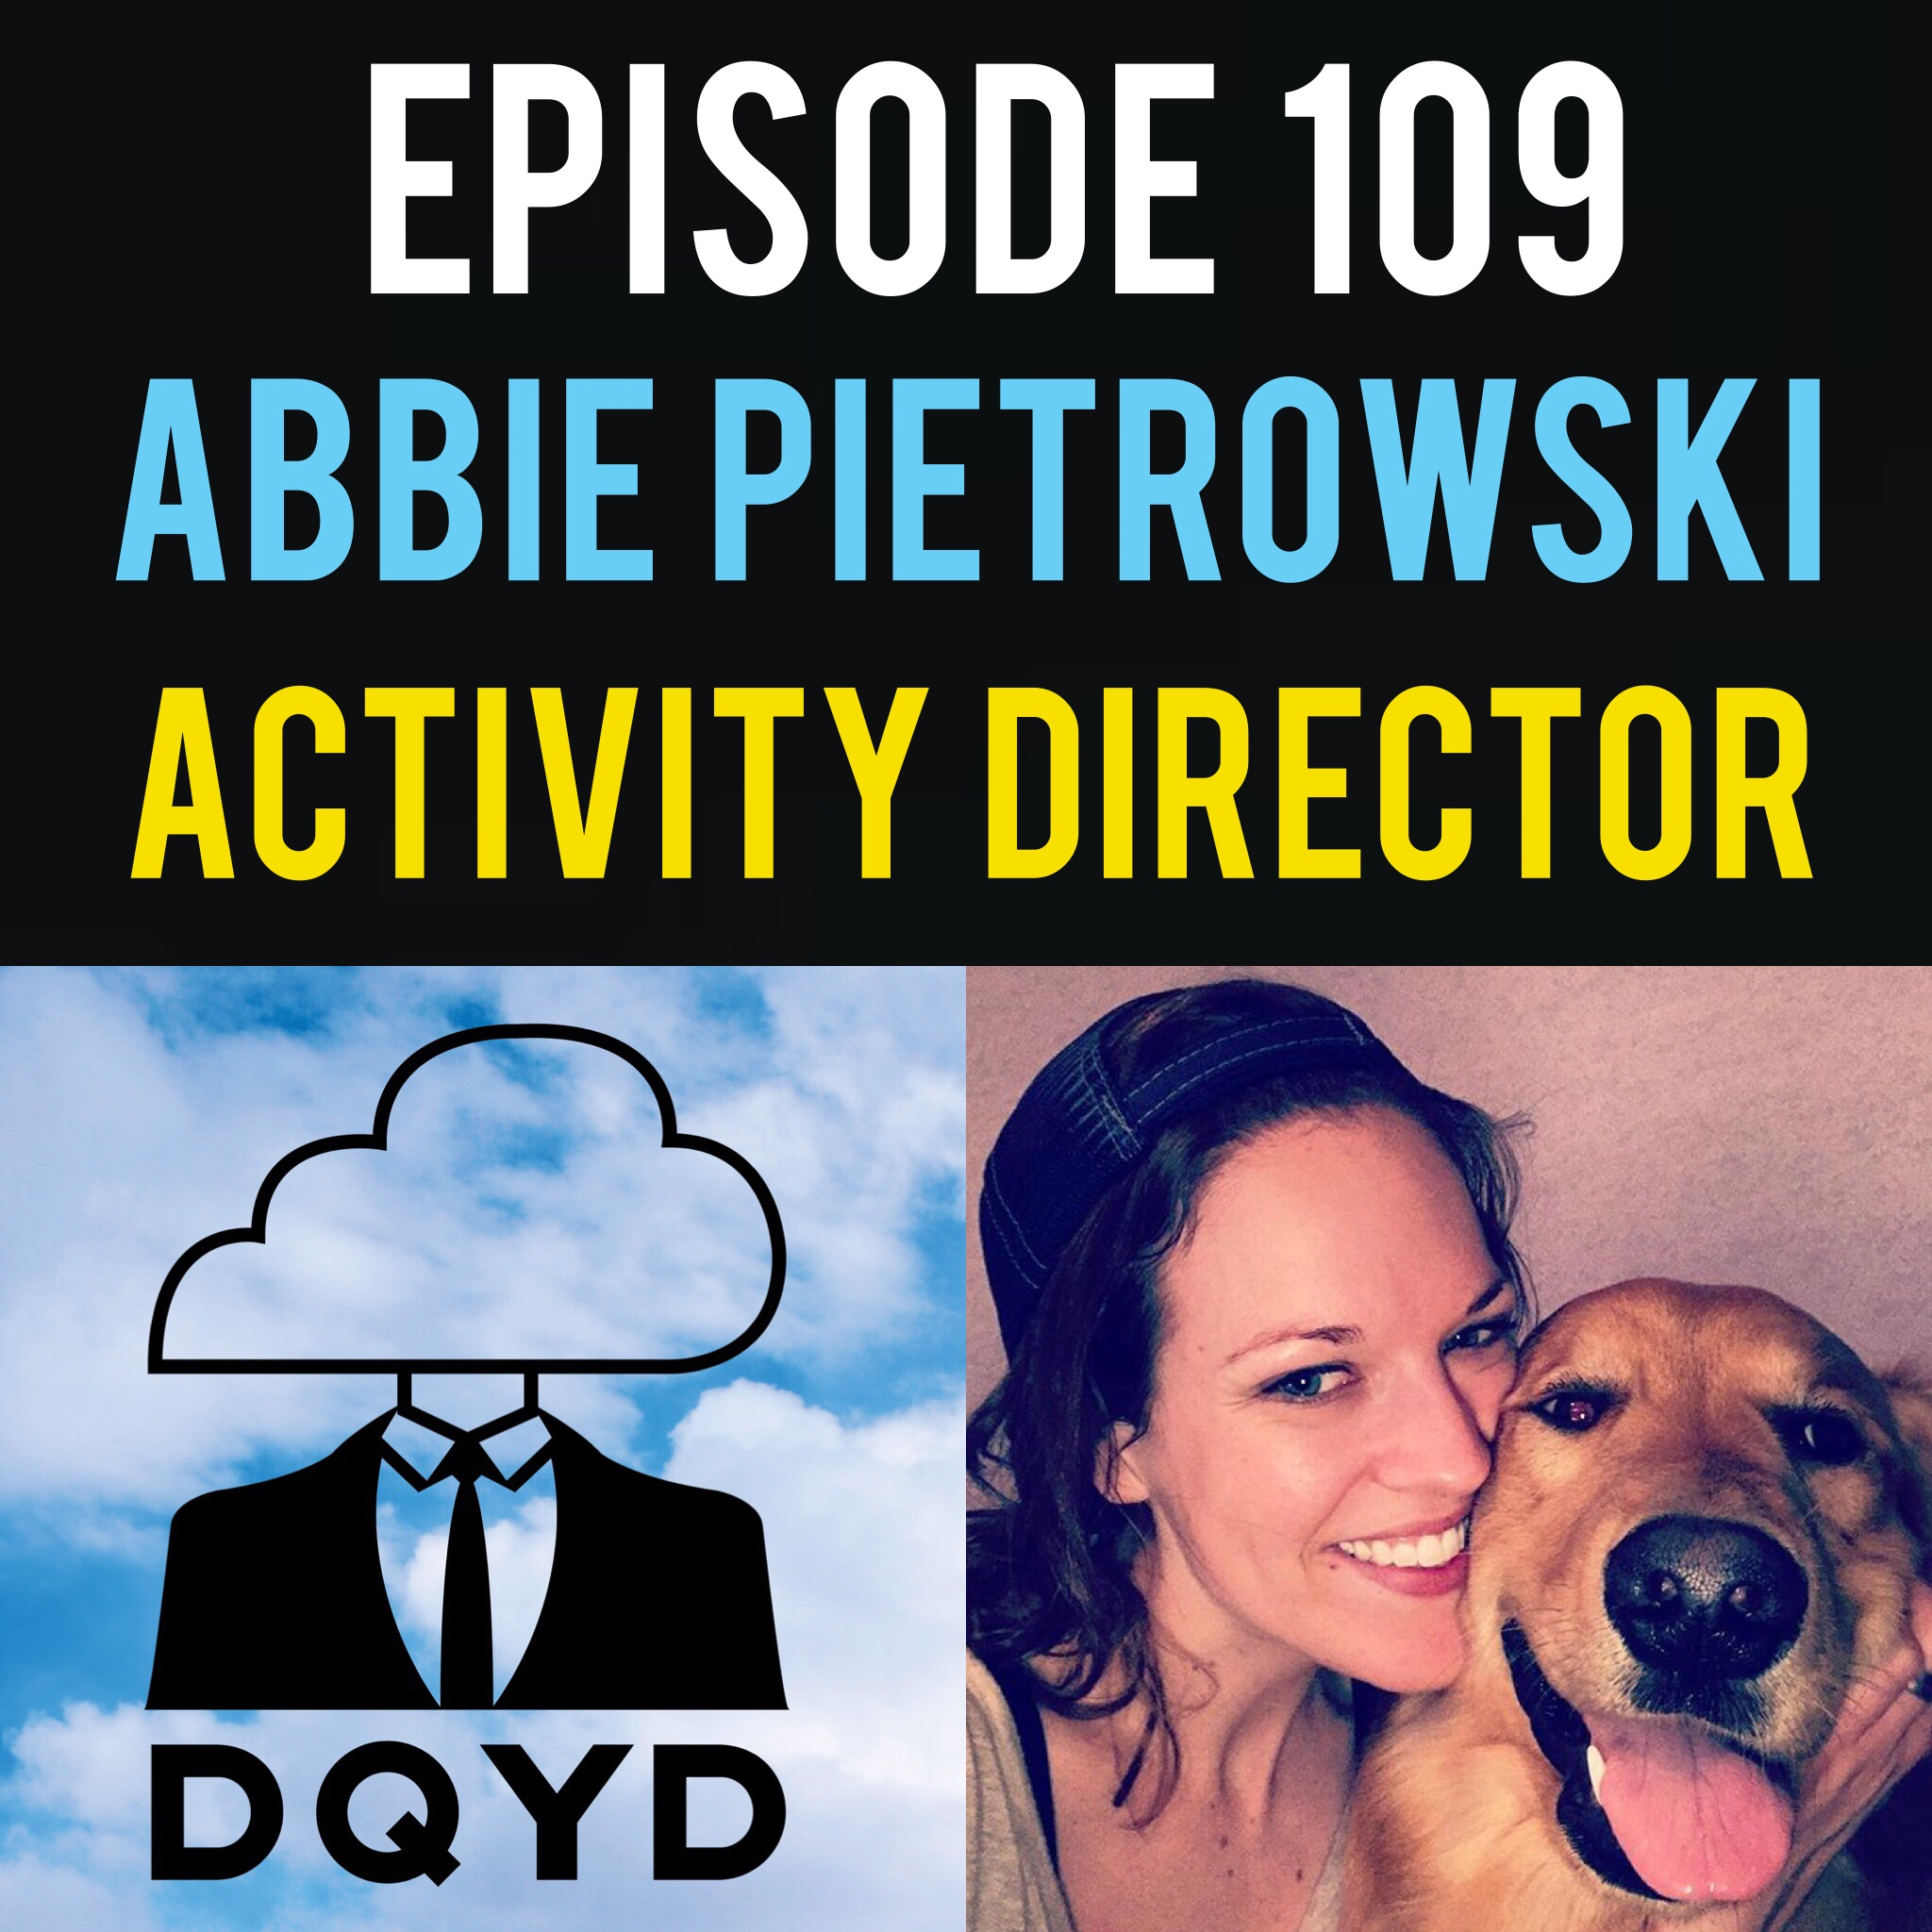 """Episode 109 with Activity Director: Abbie Pietrowski! Full of positivity and motivating stories, Abbie shares with us tales from her career as an assisted living activities director. We discuss how to keep finding reasons to push forward and how it's never too late to make new friends.  Song of the week is """"Let's Get It' by Sinumatic! Check out some of awesome work by visiting: https://soundcloud.com/sinumatic1"""